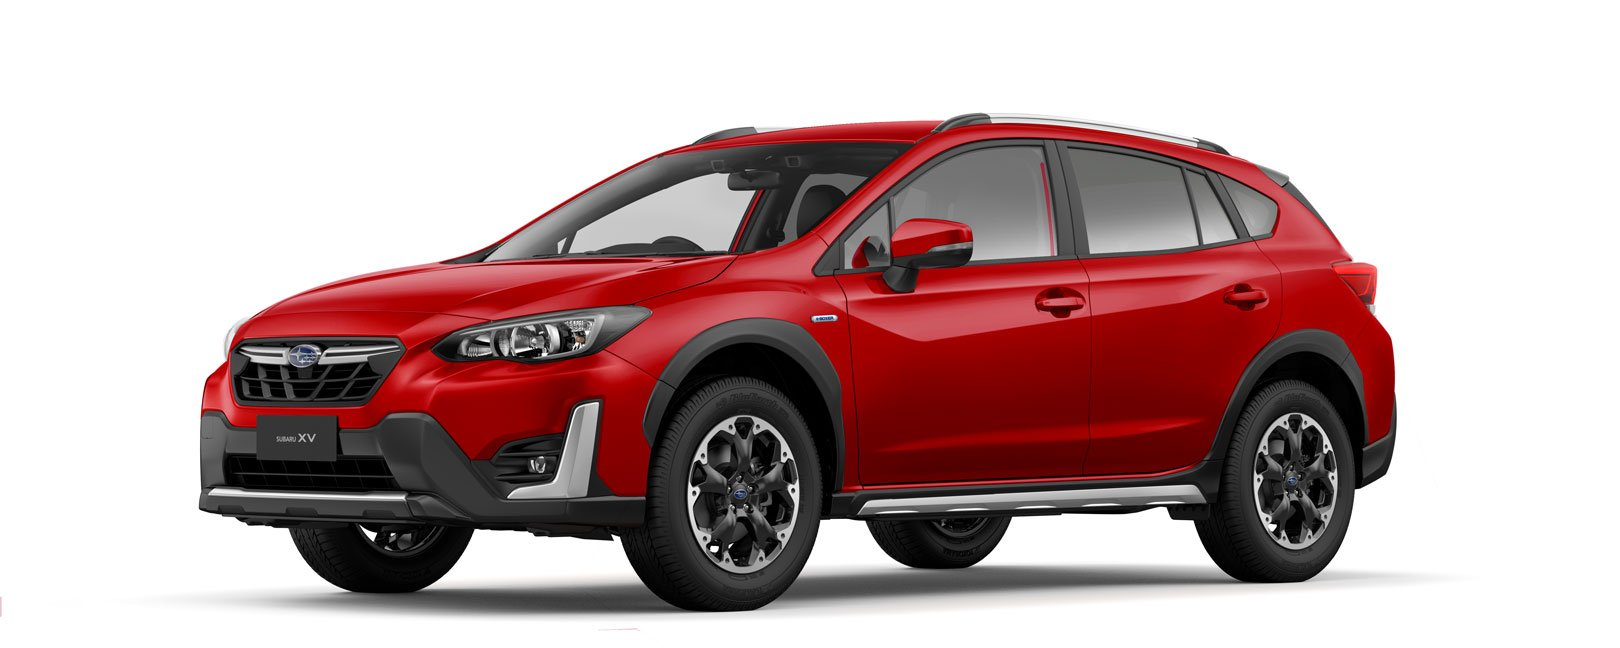 21 XV Hybrid pure red